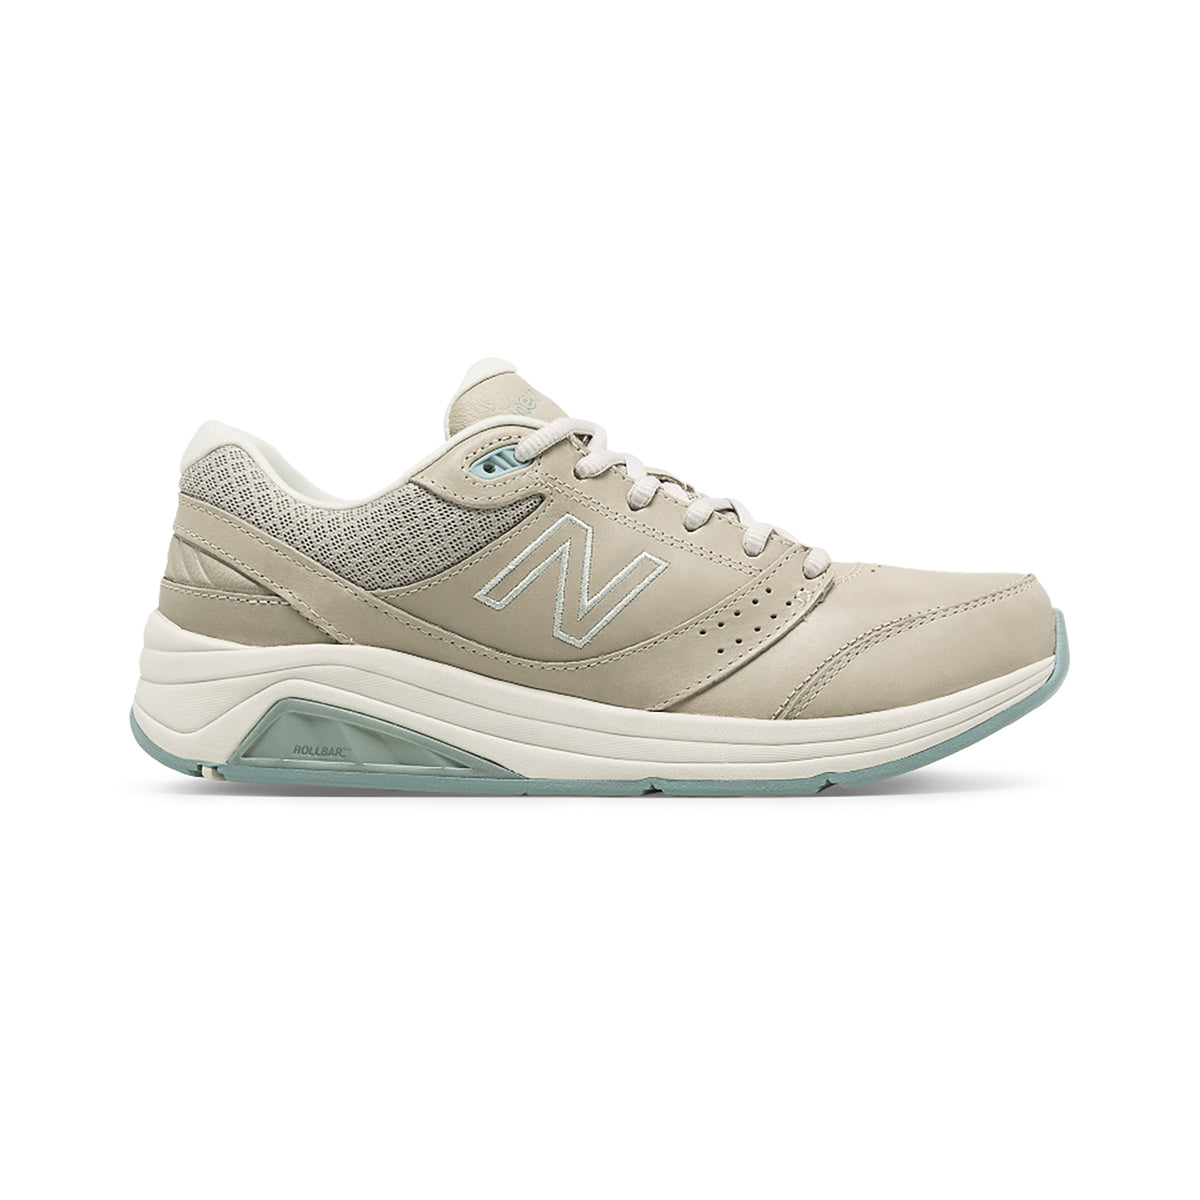 Balance 928v3 Walking New ShoeB Womens 6gbYf7yv